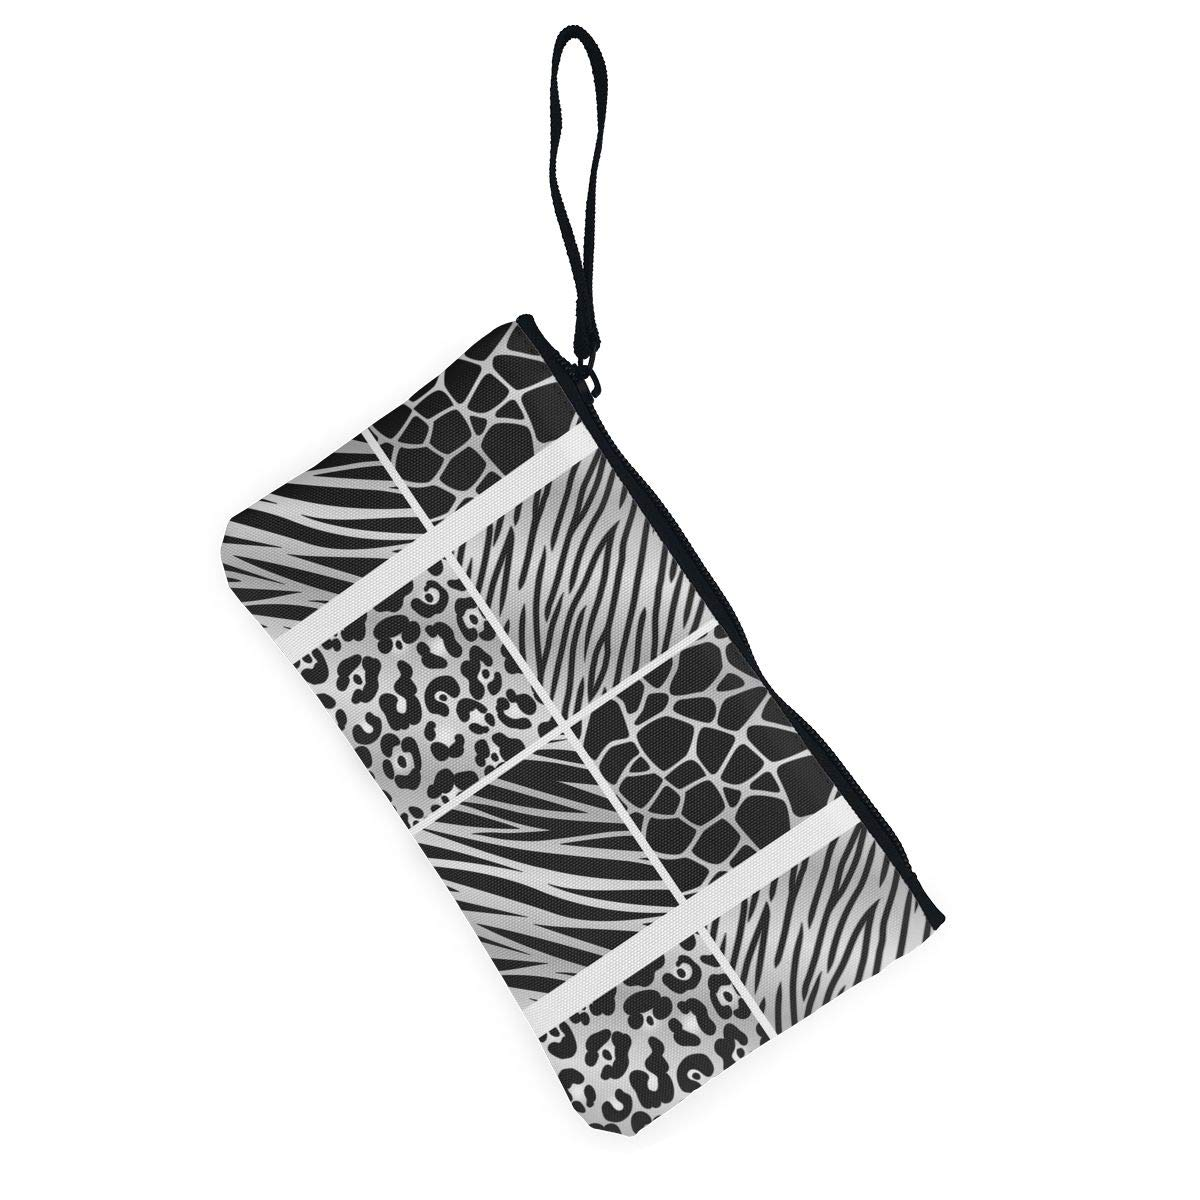 Different Silver Animal Print Pattern Canvas Card Wallet With Zipper For Women Womens Fashion Coin Purse